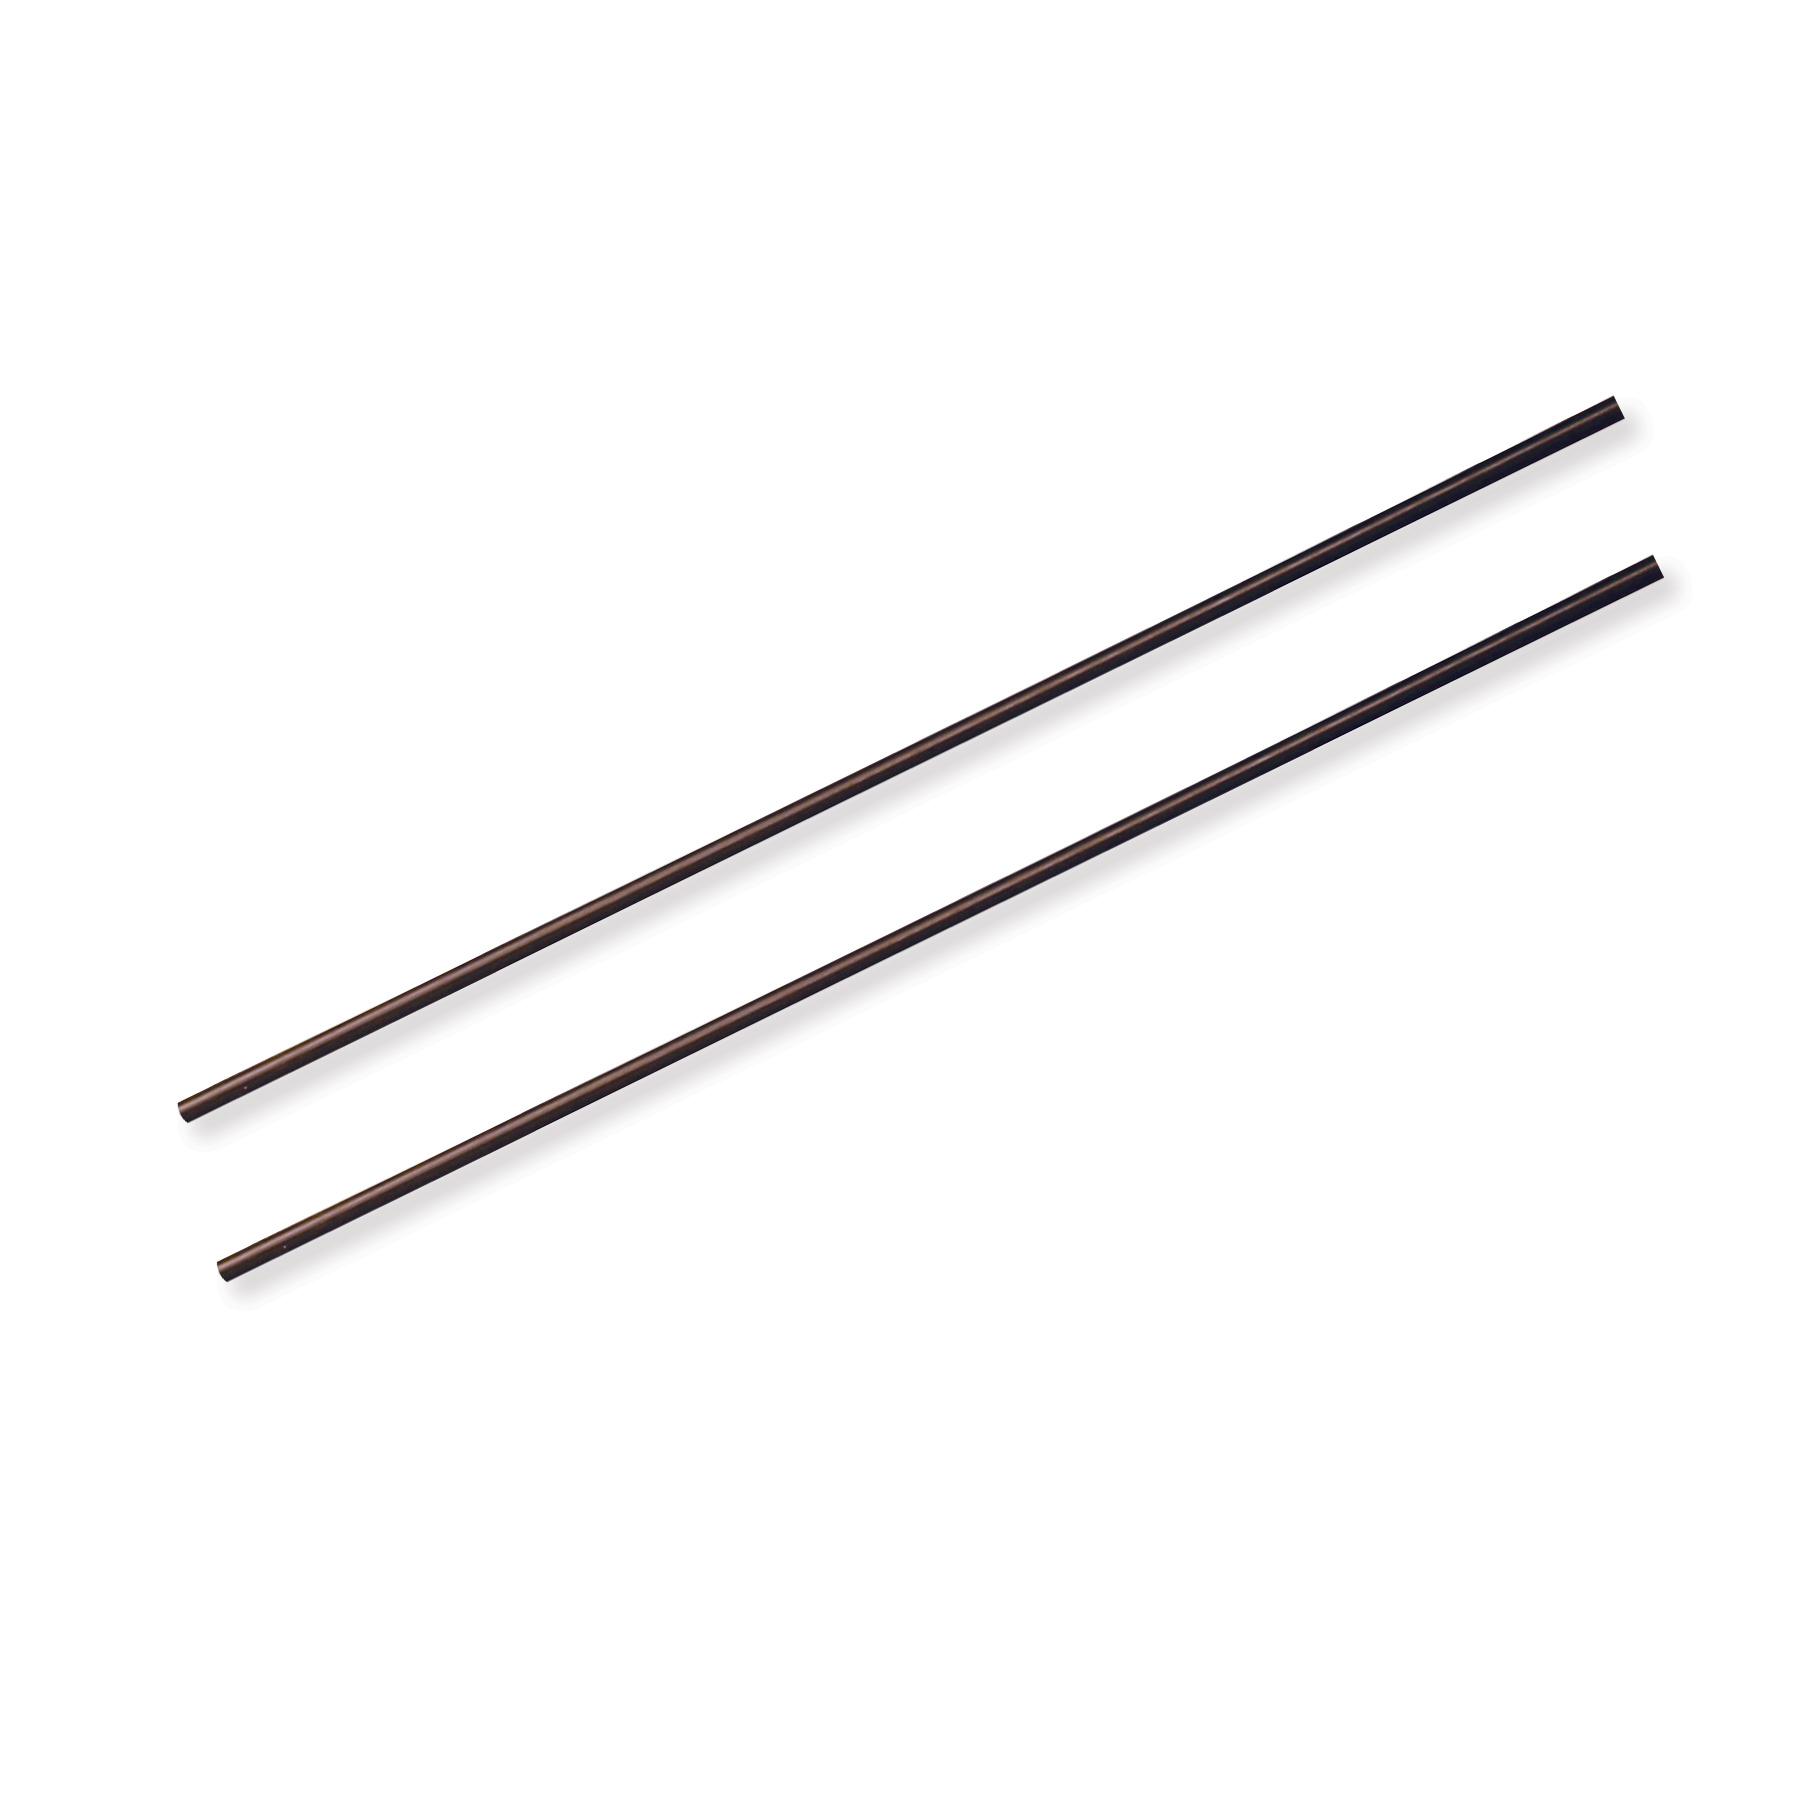 Replacement Fender Support Rods - 1 Pair